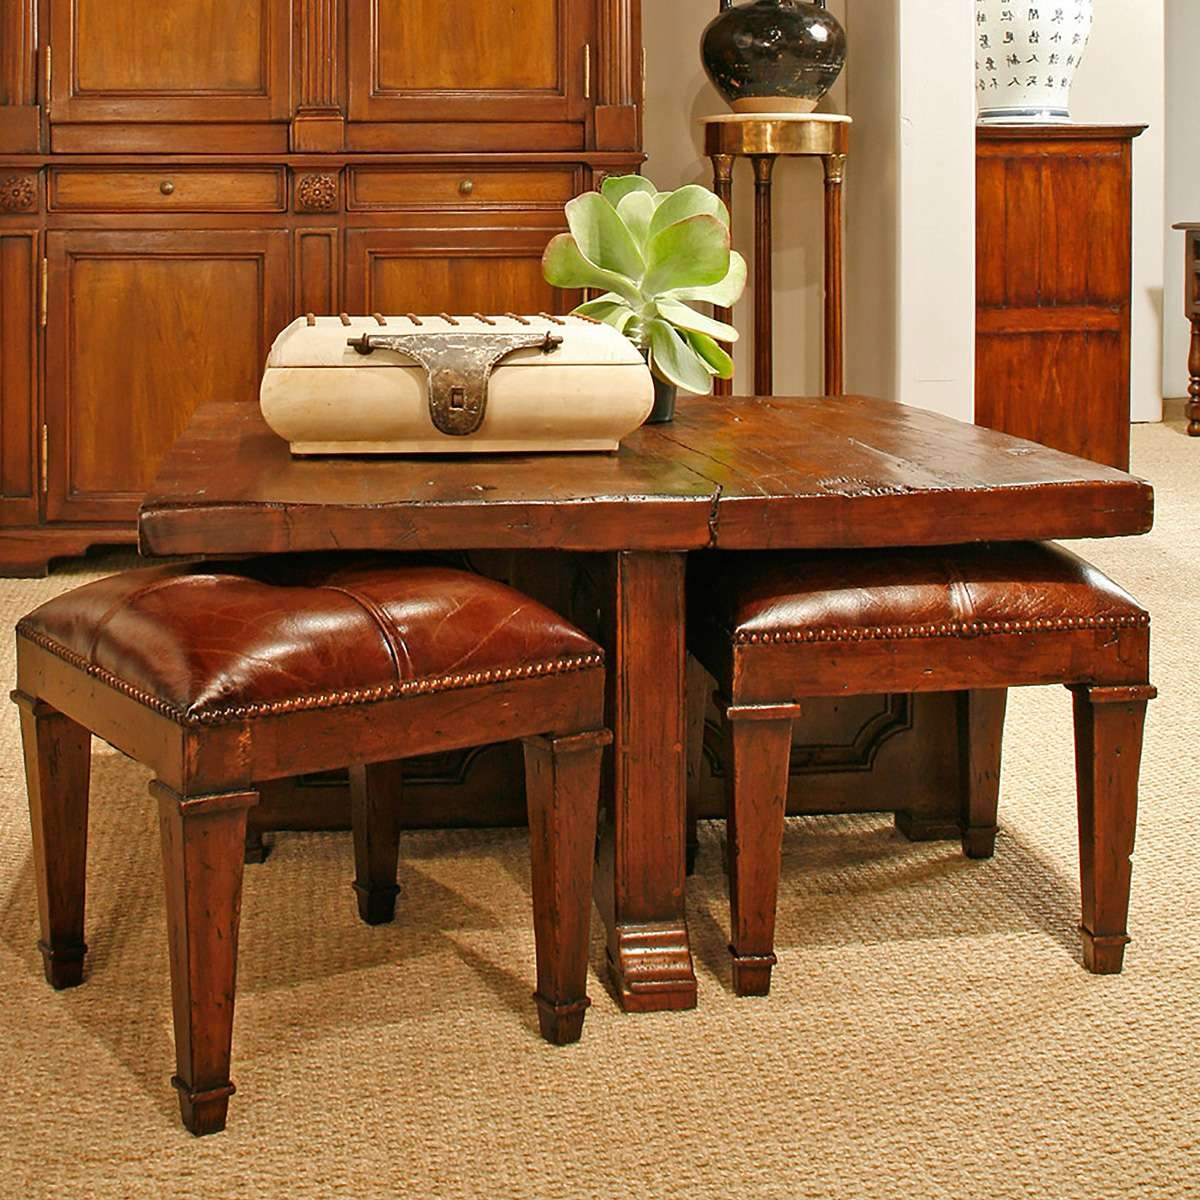 Coffee Table With 4 Nesting Stools – So That's Cool Regarding Most Recent Coffee Tables With Nesting Stools (View 7 of 20)